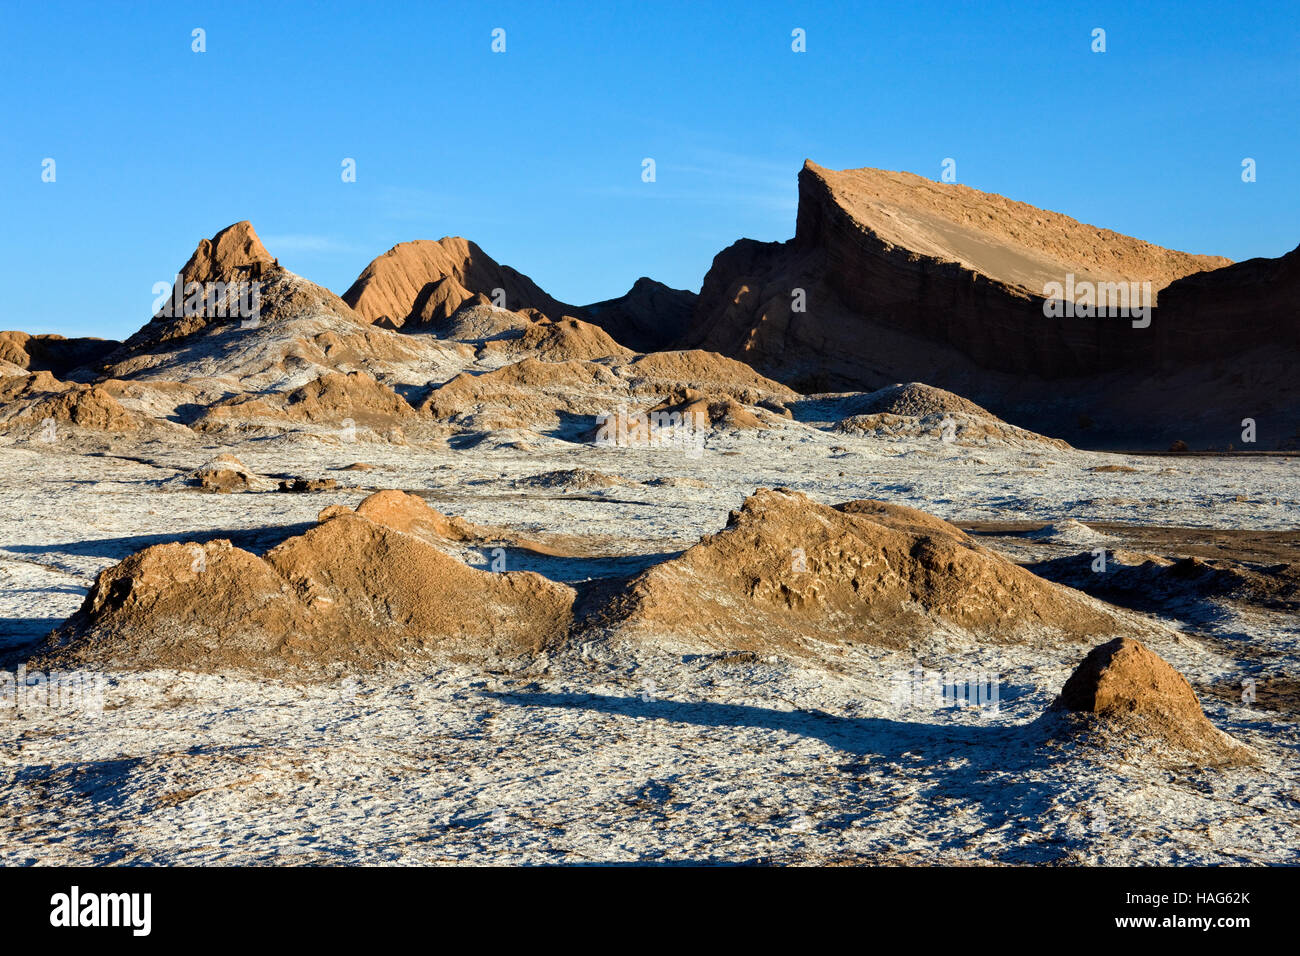 Late afternoon sun in the Valley of the Moon (Valle de la Luna) in the Atacama Desert in Northern Chile. - Stock Image